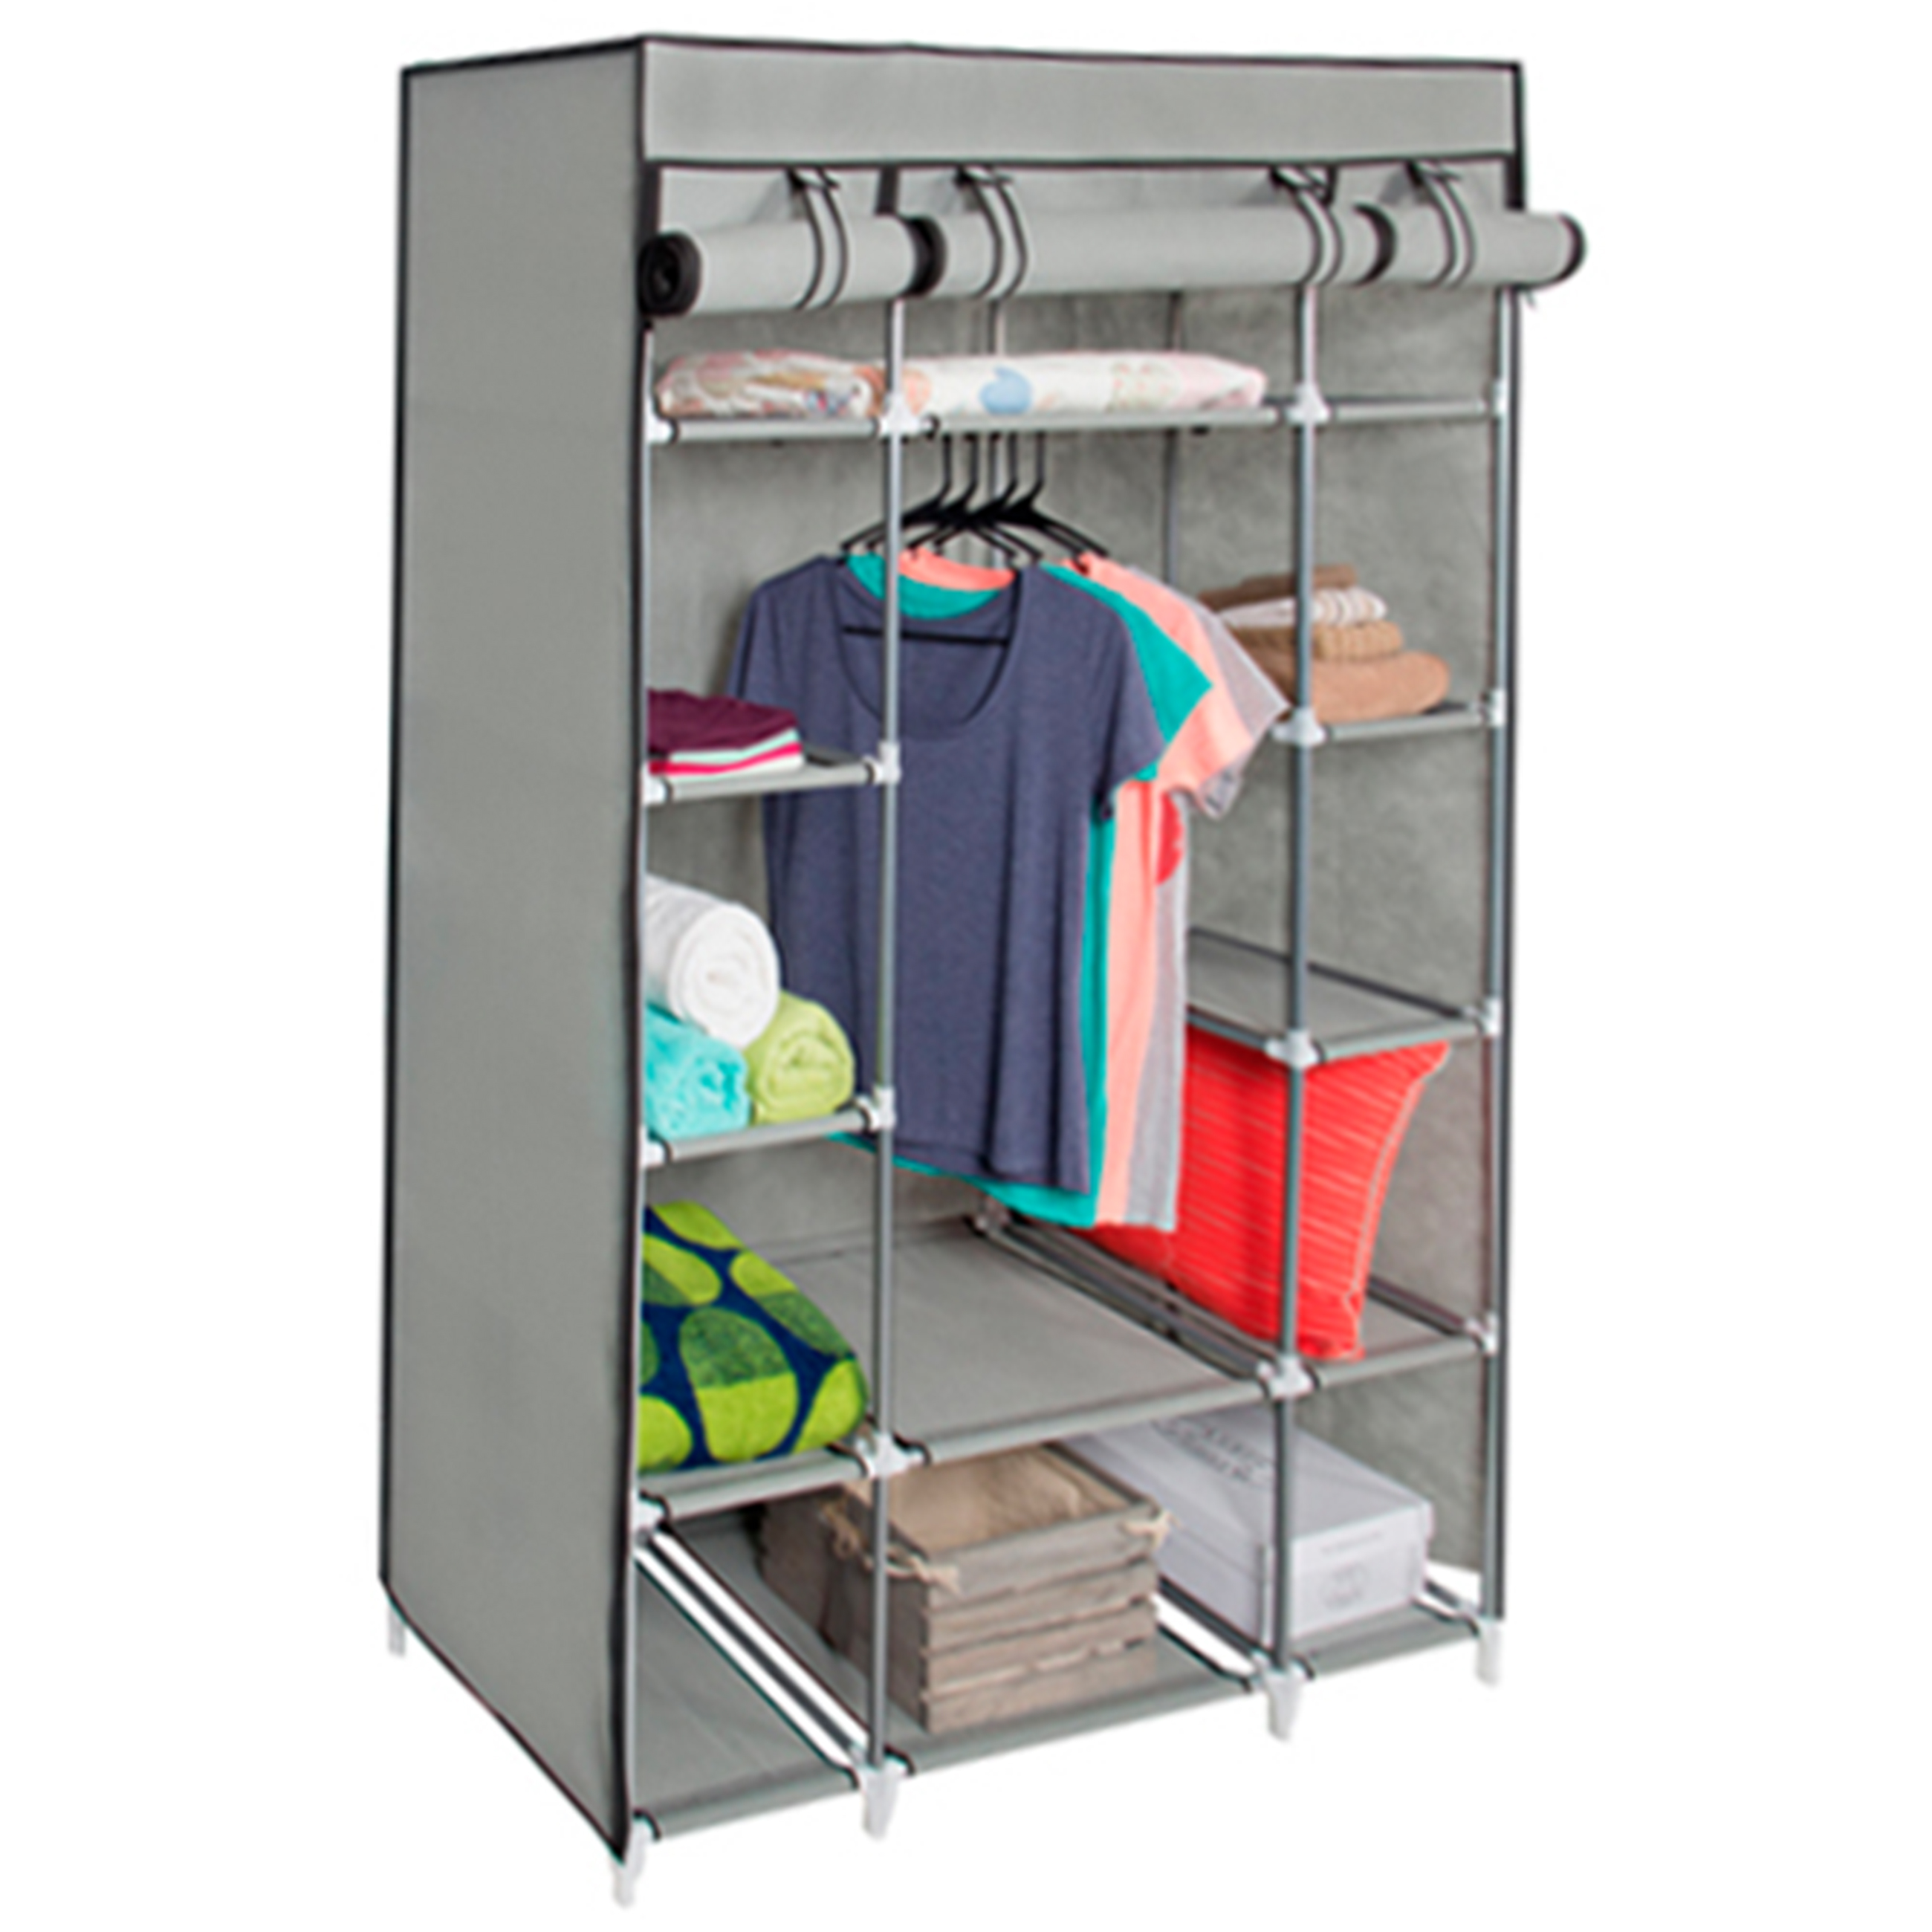 Best Choice Products 13-Shelf Portable Fabric Closet Wardrobe Storage Organizer w/ Cover and Hanging Rod - Gray